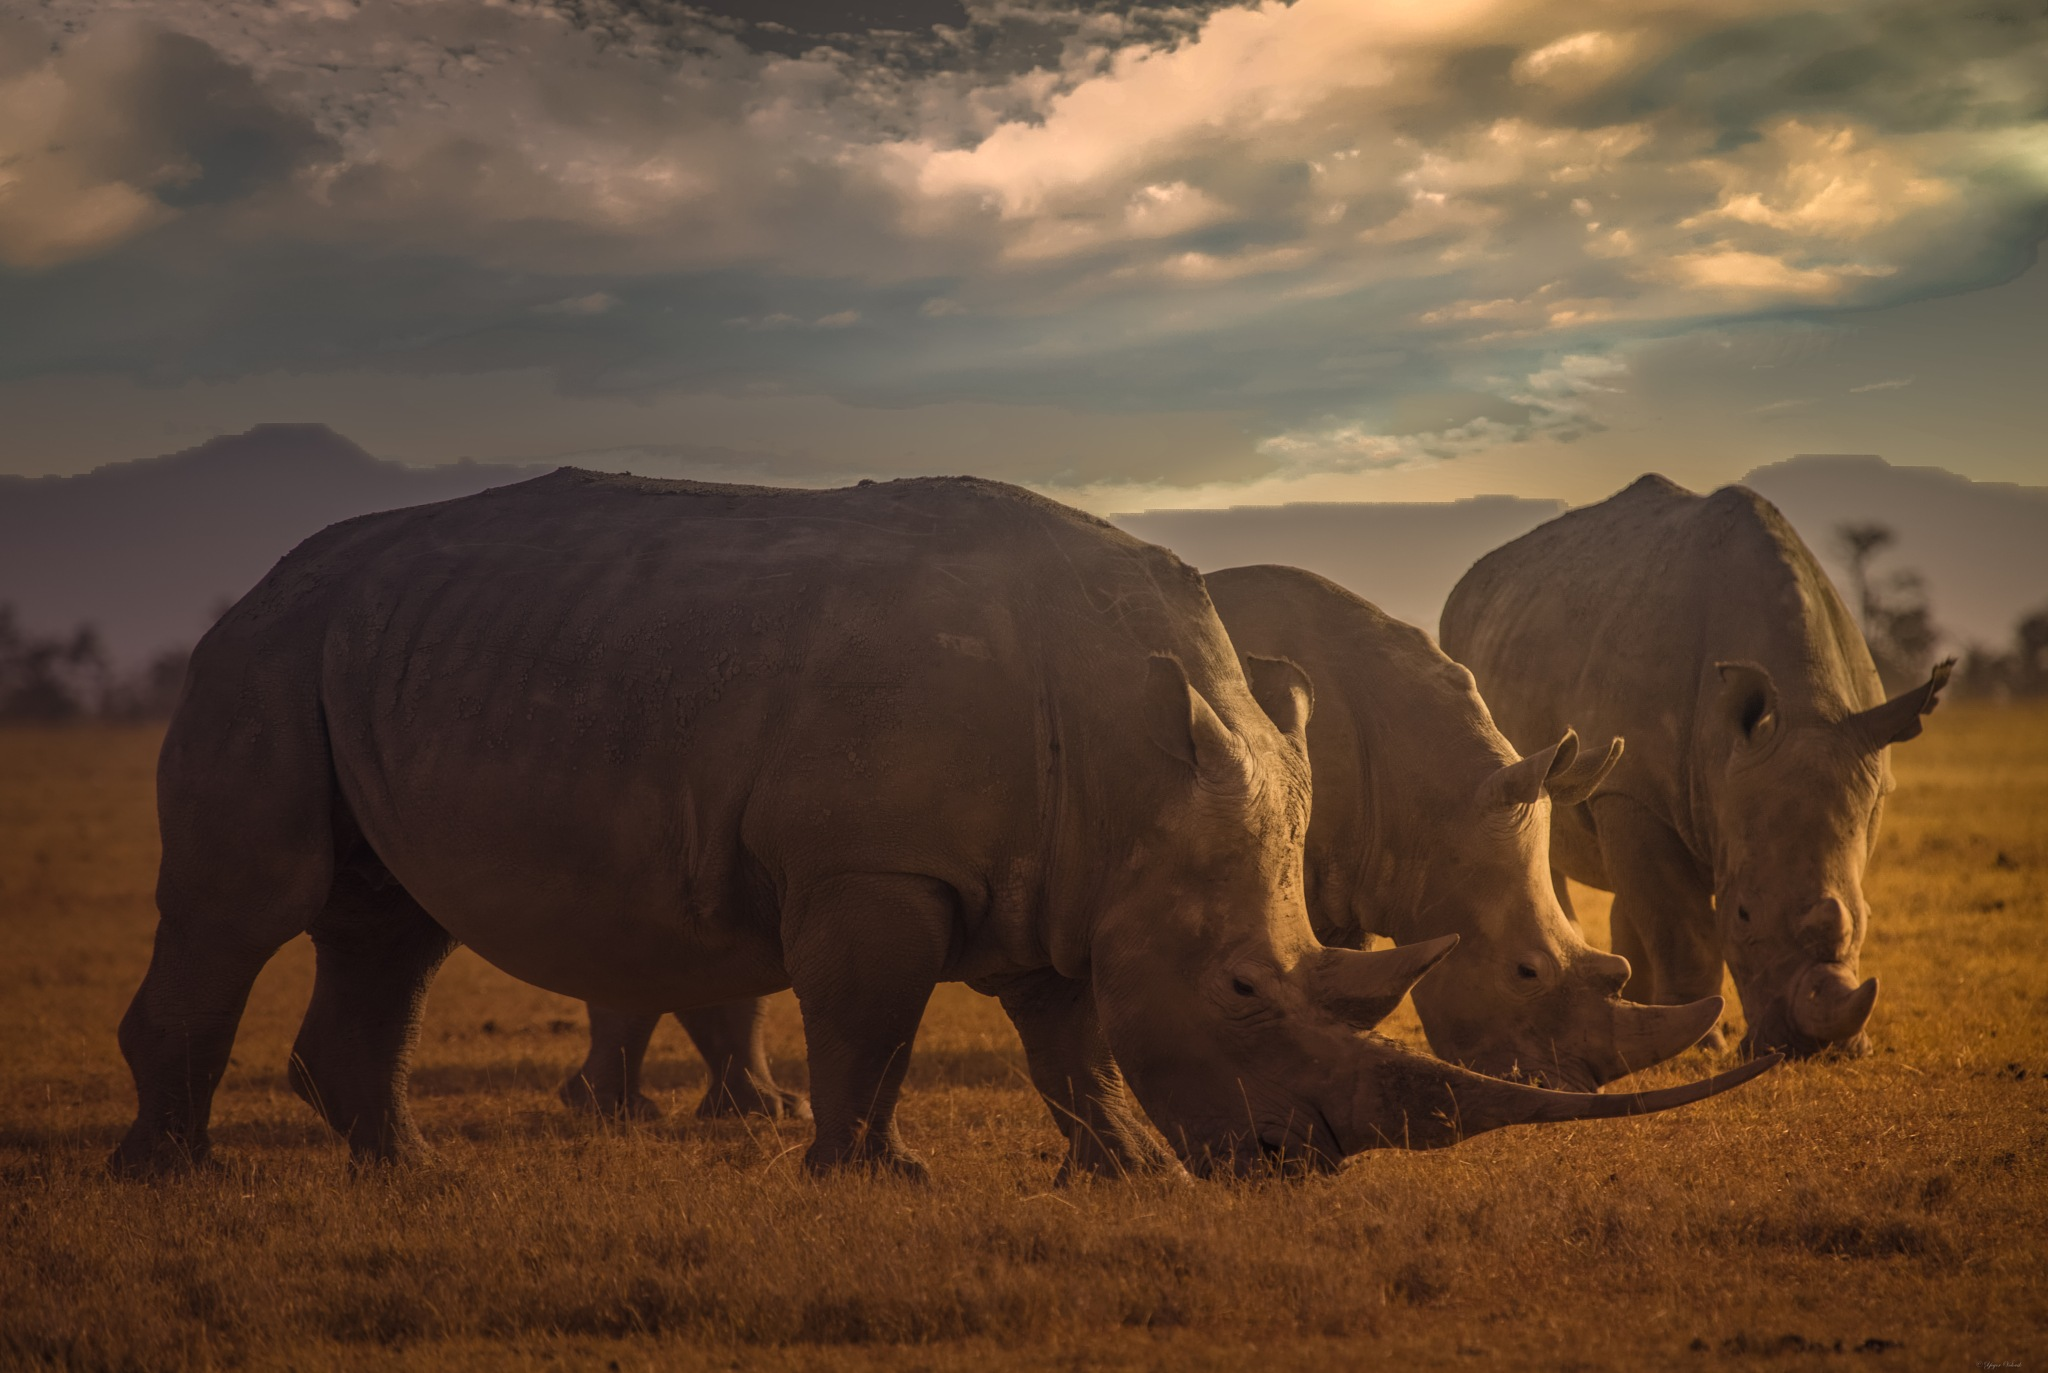 A rhino family in the wild. by Yegor & Tanya